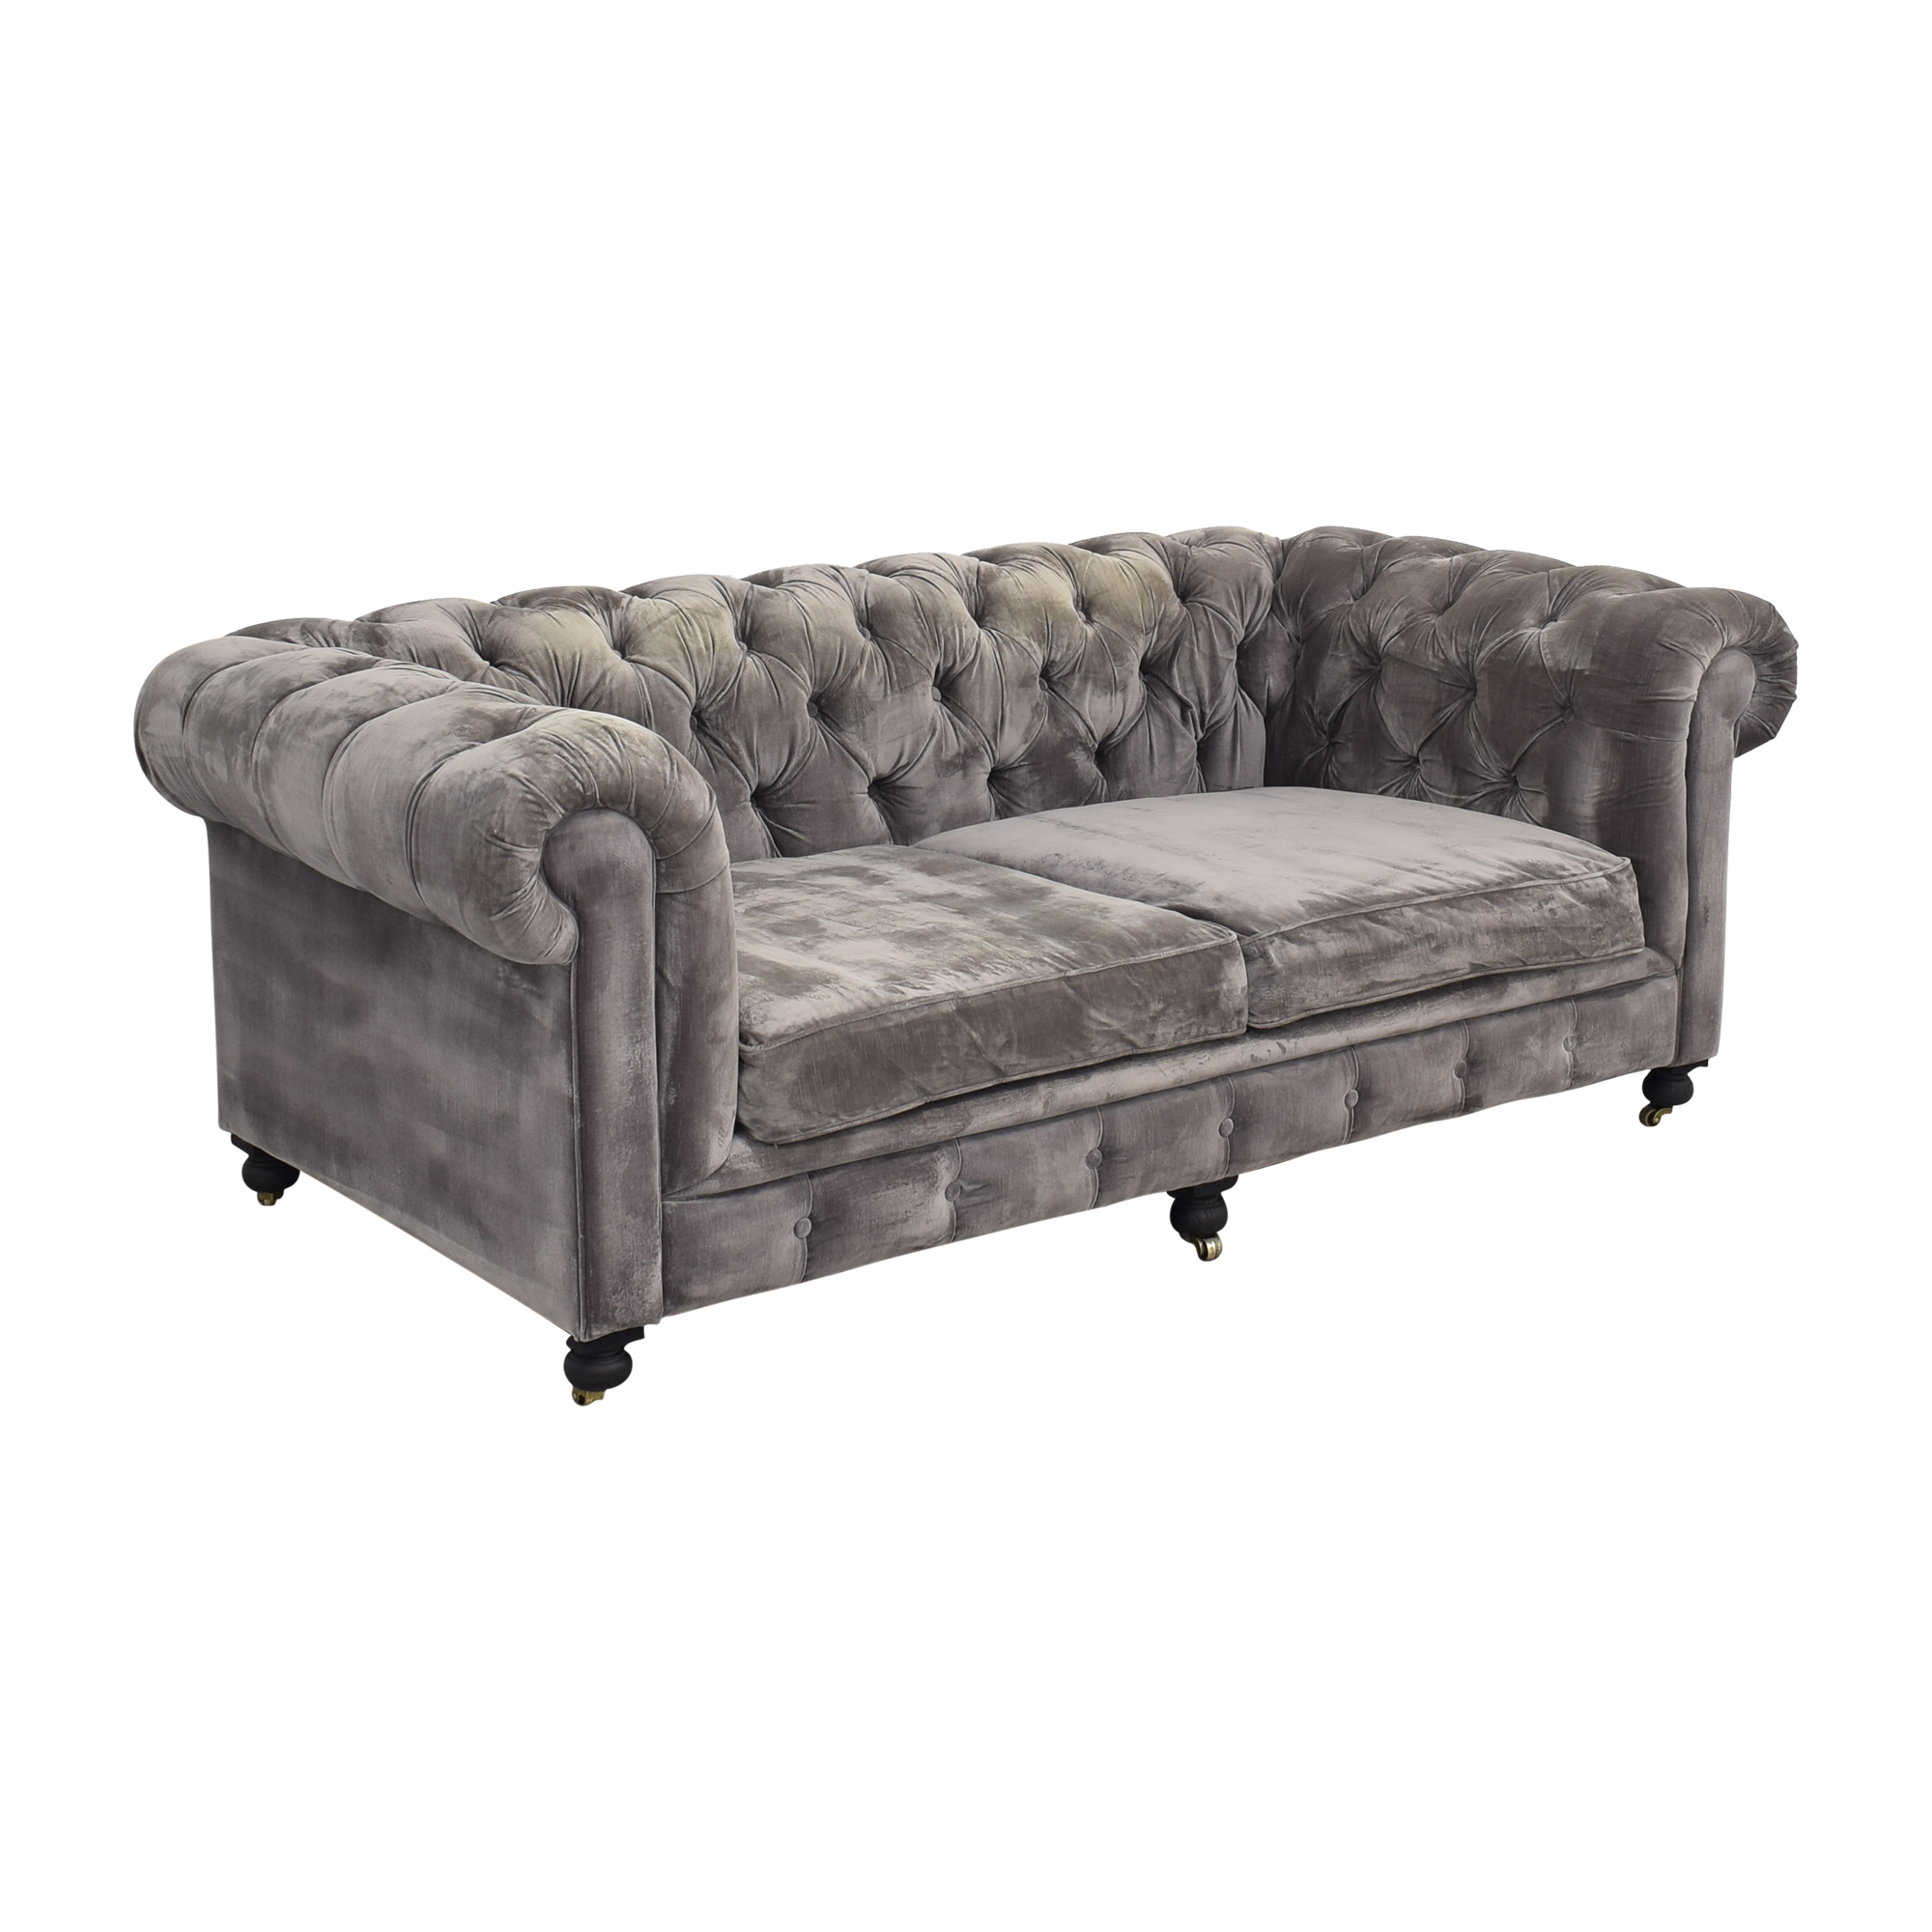 Restoration Hardware Restoration Hardware Kensington Sofa for sale